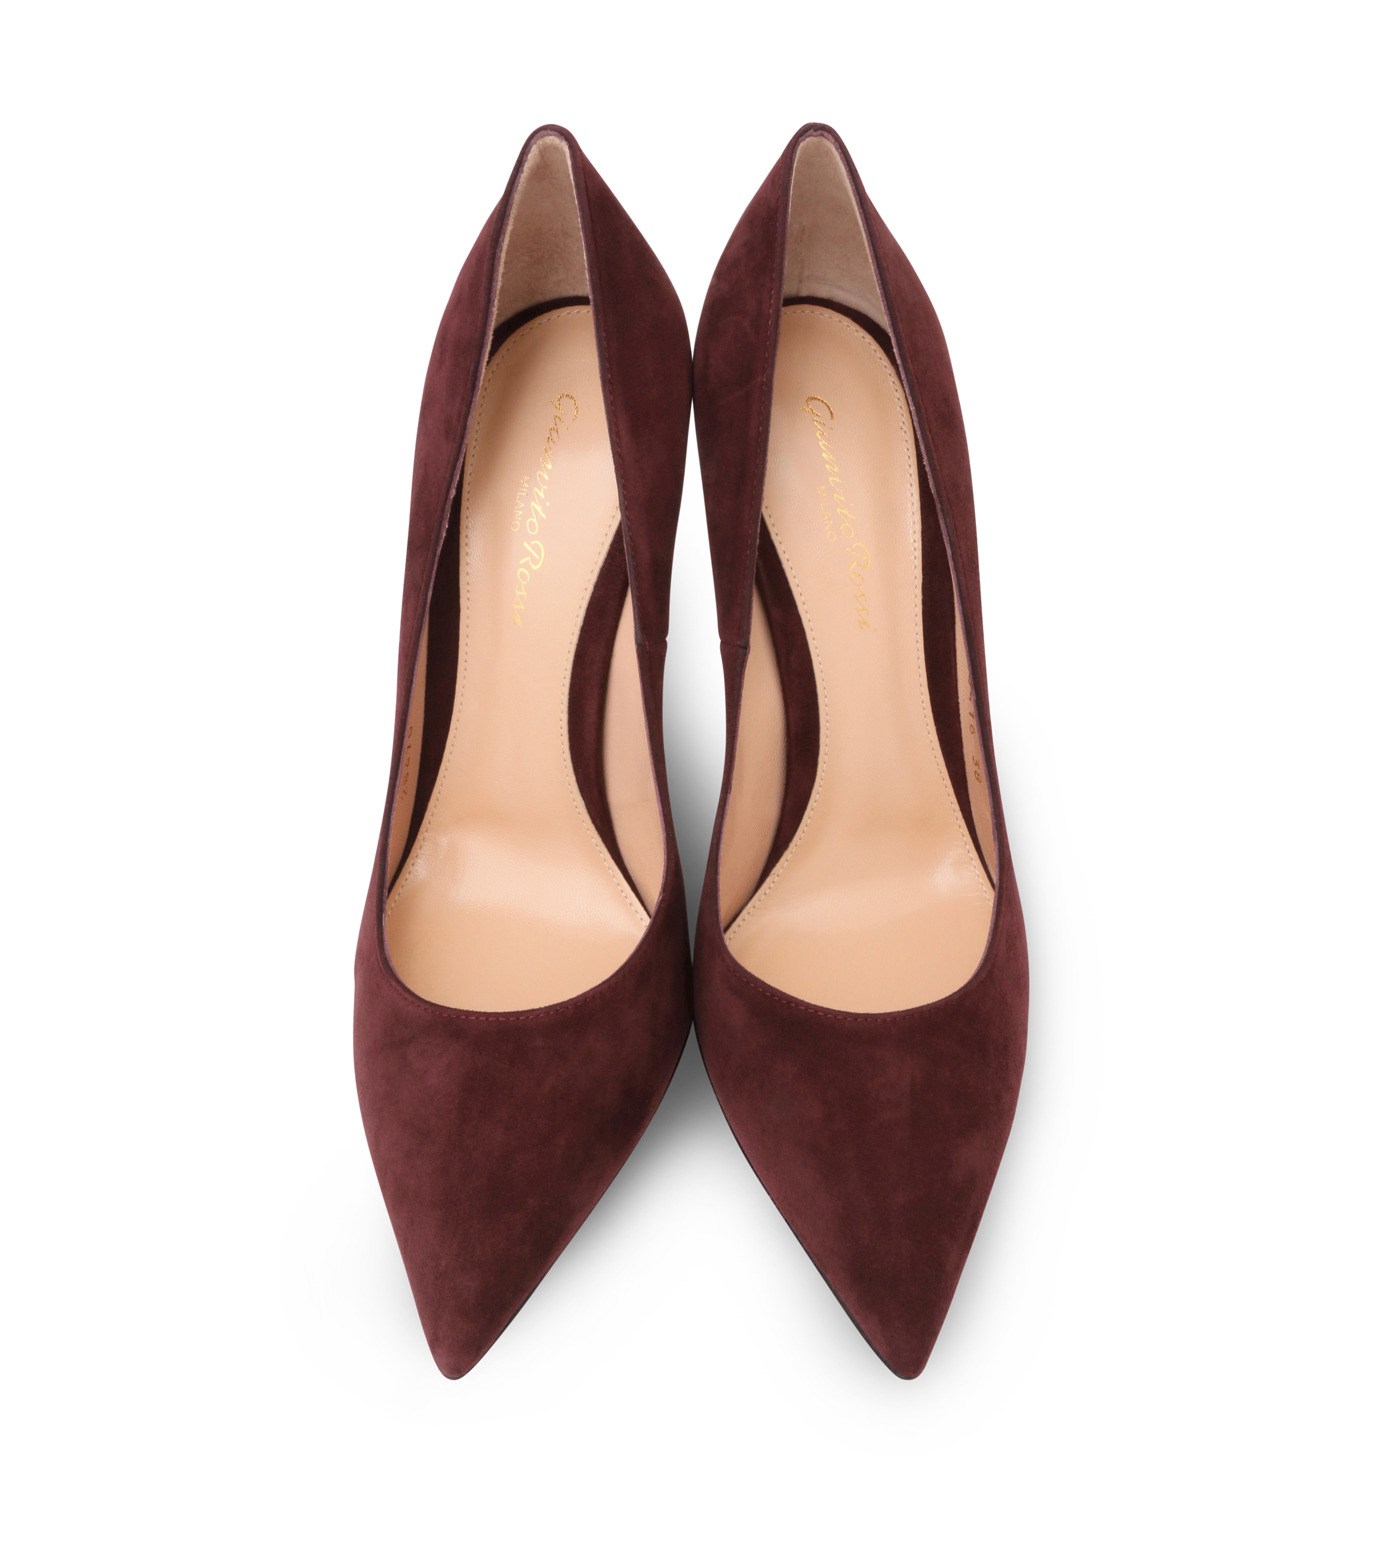 Gianvito Rossi(ジャンヴィト ロッシ)のSuede Pump-BORDEAUX(パンプス/pumps)-G28470-63 拡大詳細画像4